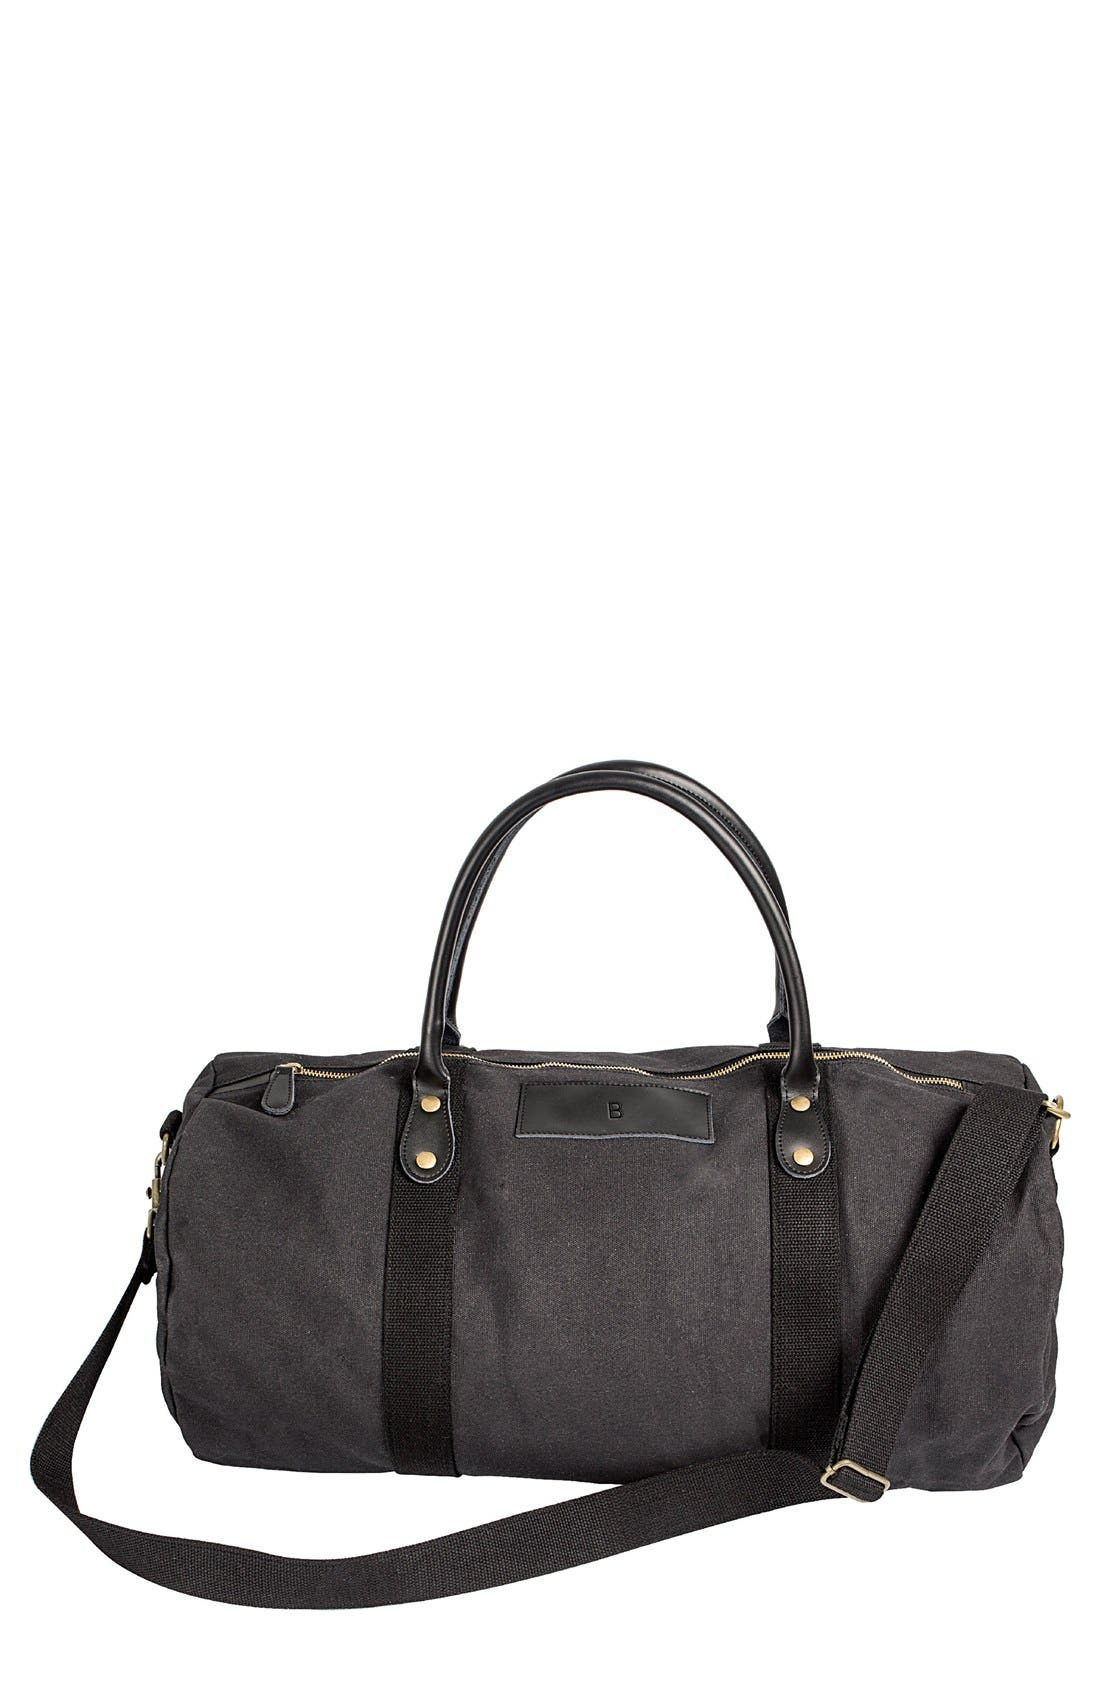 Cathy's Concepts Monogram Duffel Bag